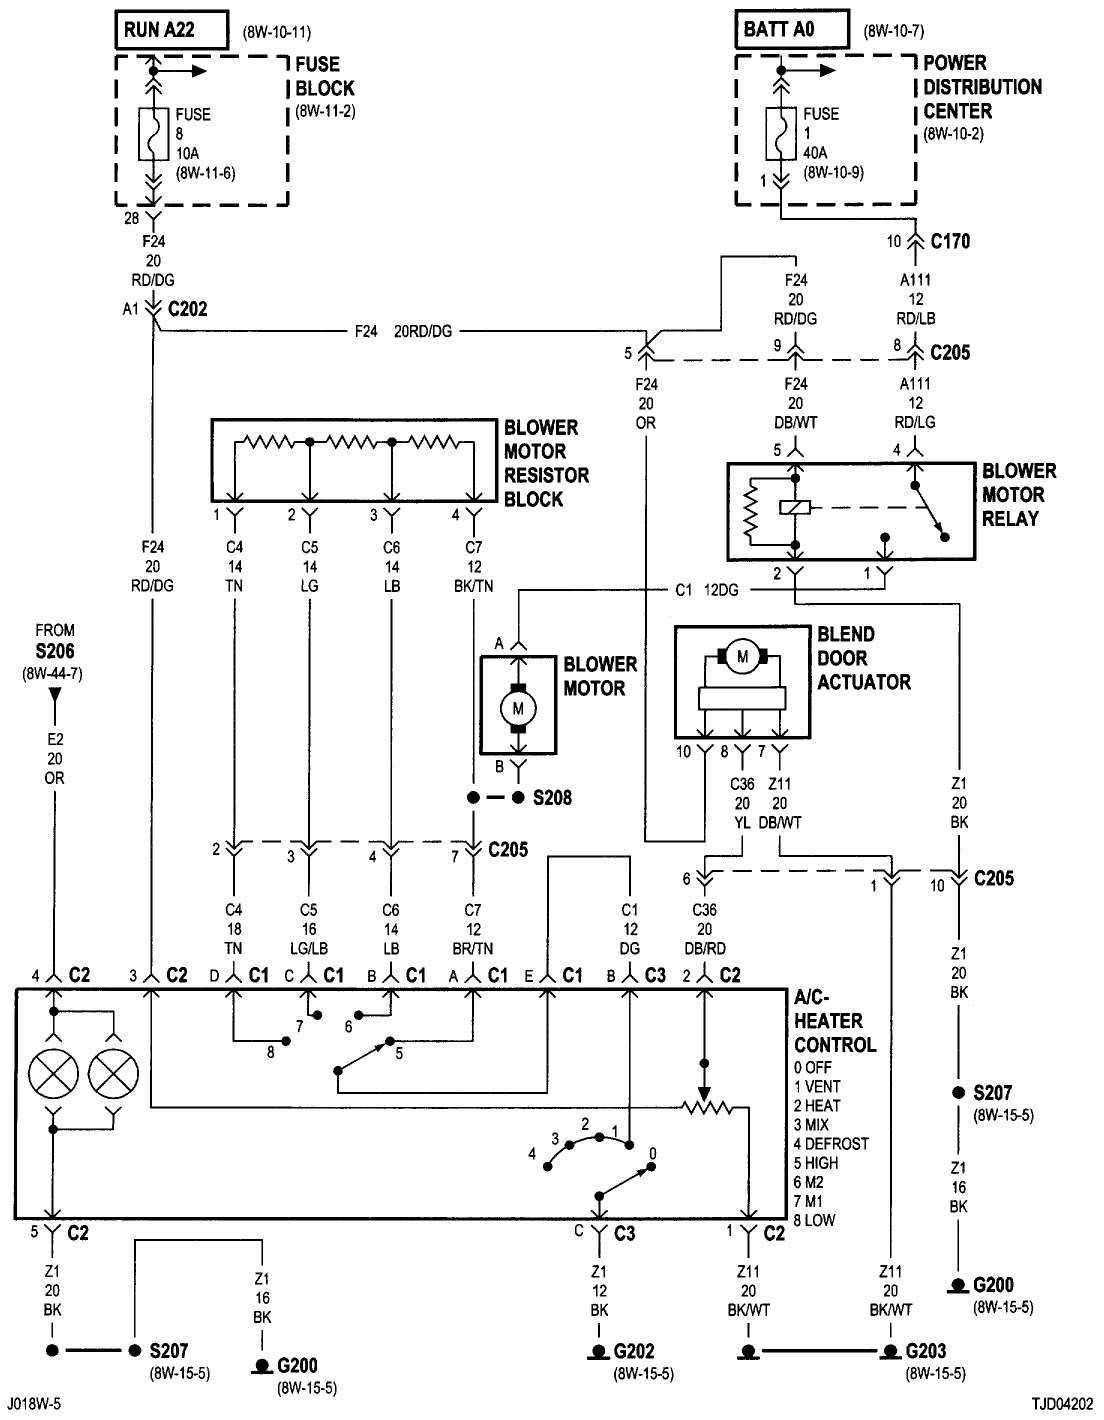 Wiring Diagram Electrical. Wiring Diagram Electrical. | Jeep tj, Jeep  wrangler, 2002 jeep wranglerPinterest